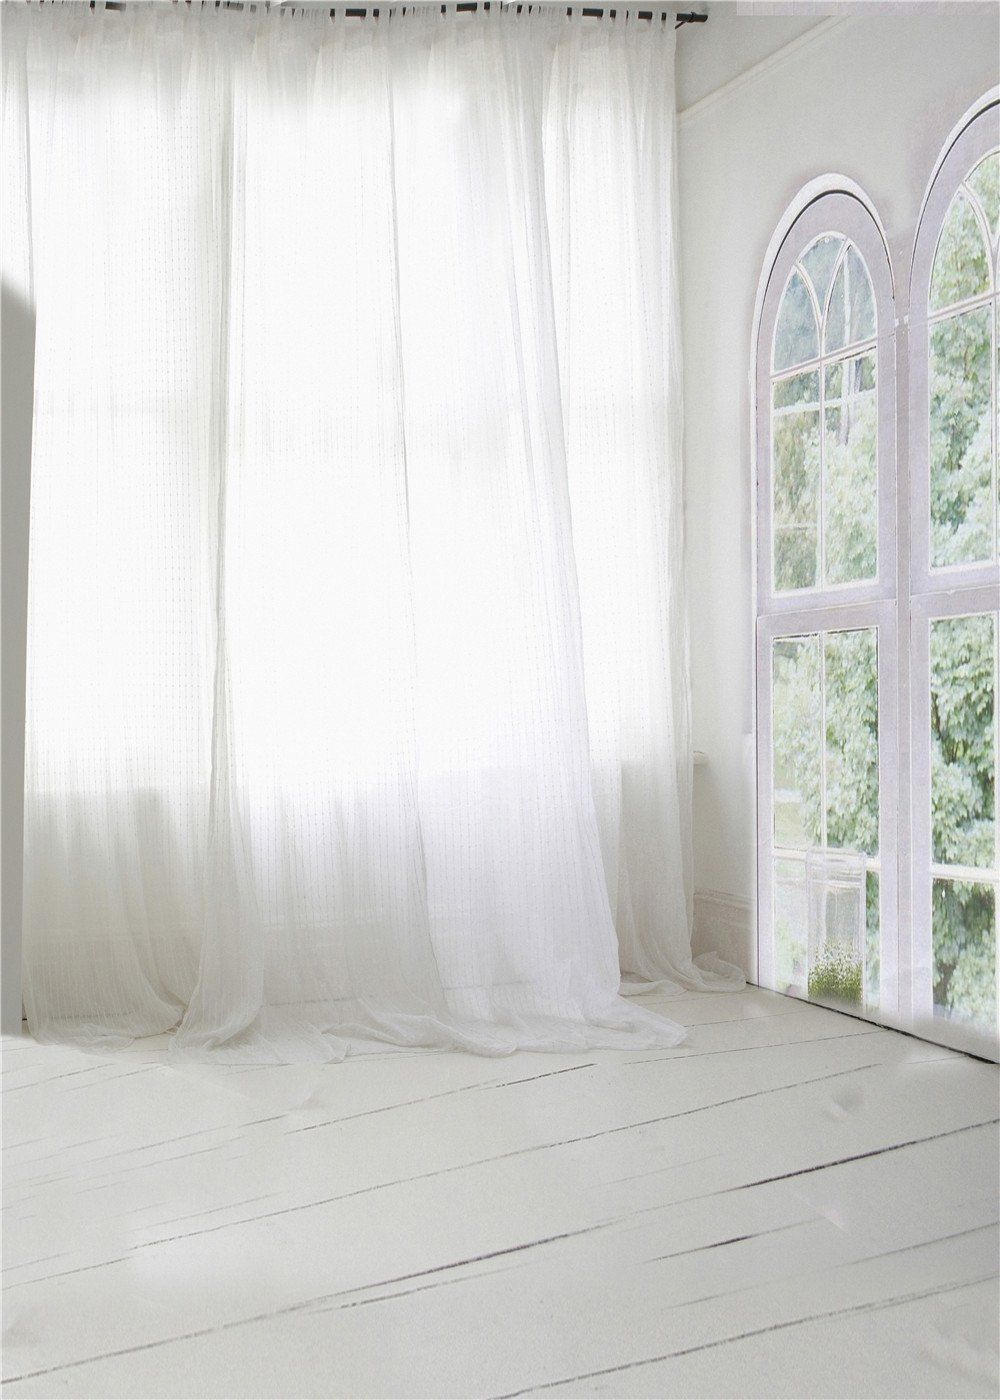 Amazon.com : SUSU 5x7ft Bedroom Backgruond White Curtain